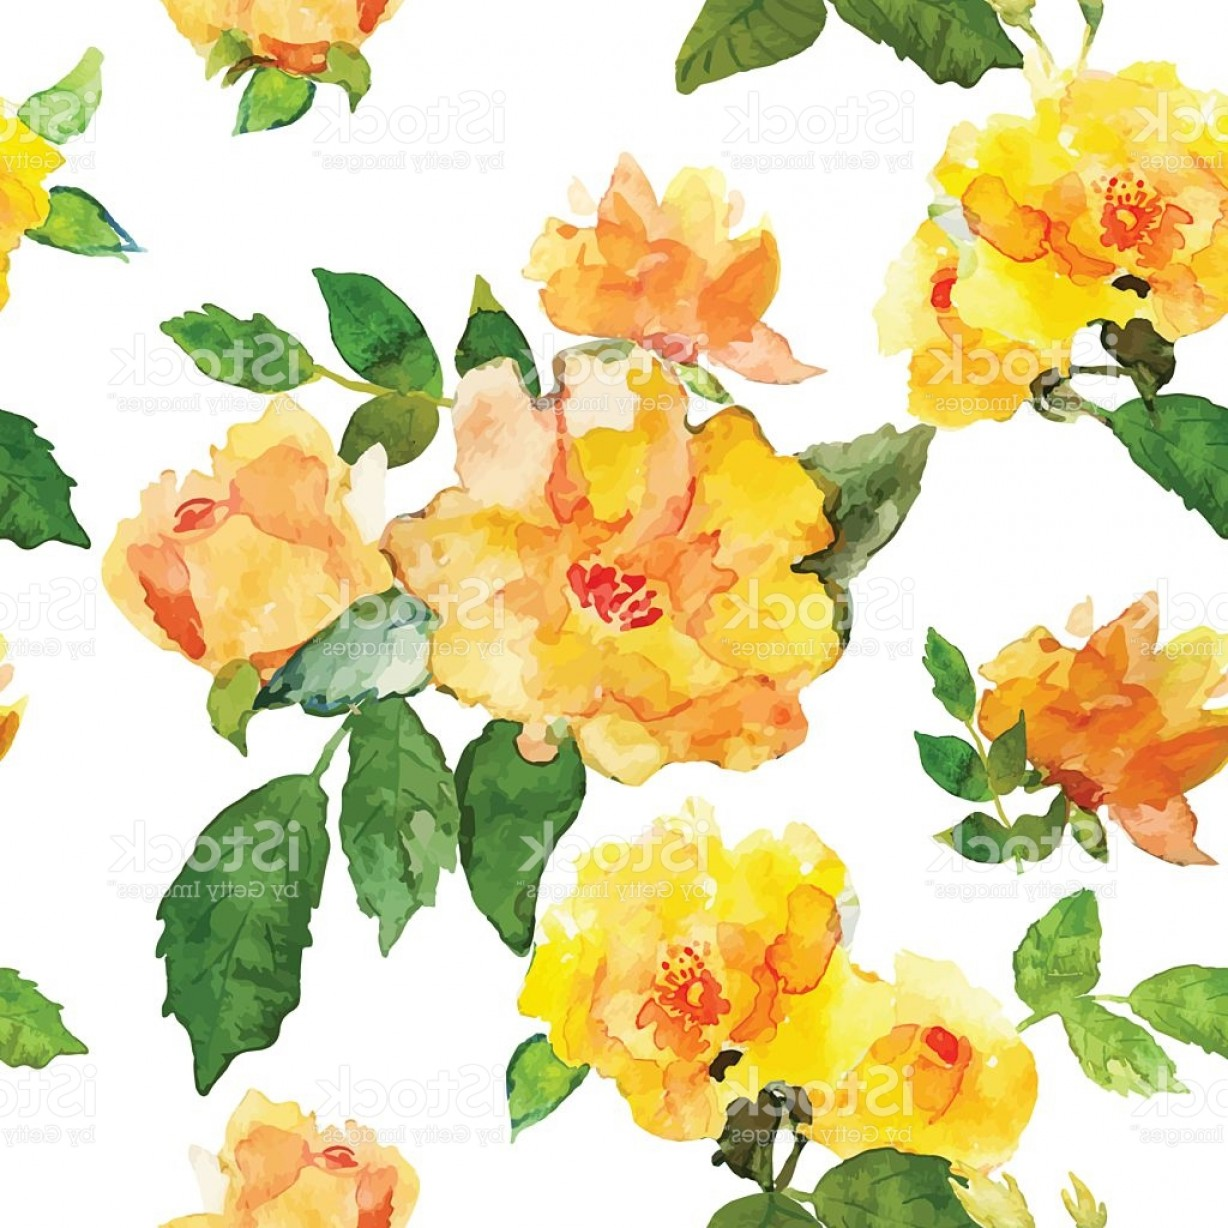 1228x1228 Floral Pattern With Yellow Roses Drawn Watercolor Gm Arenawp